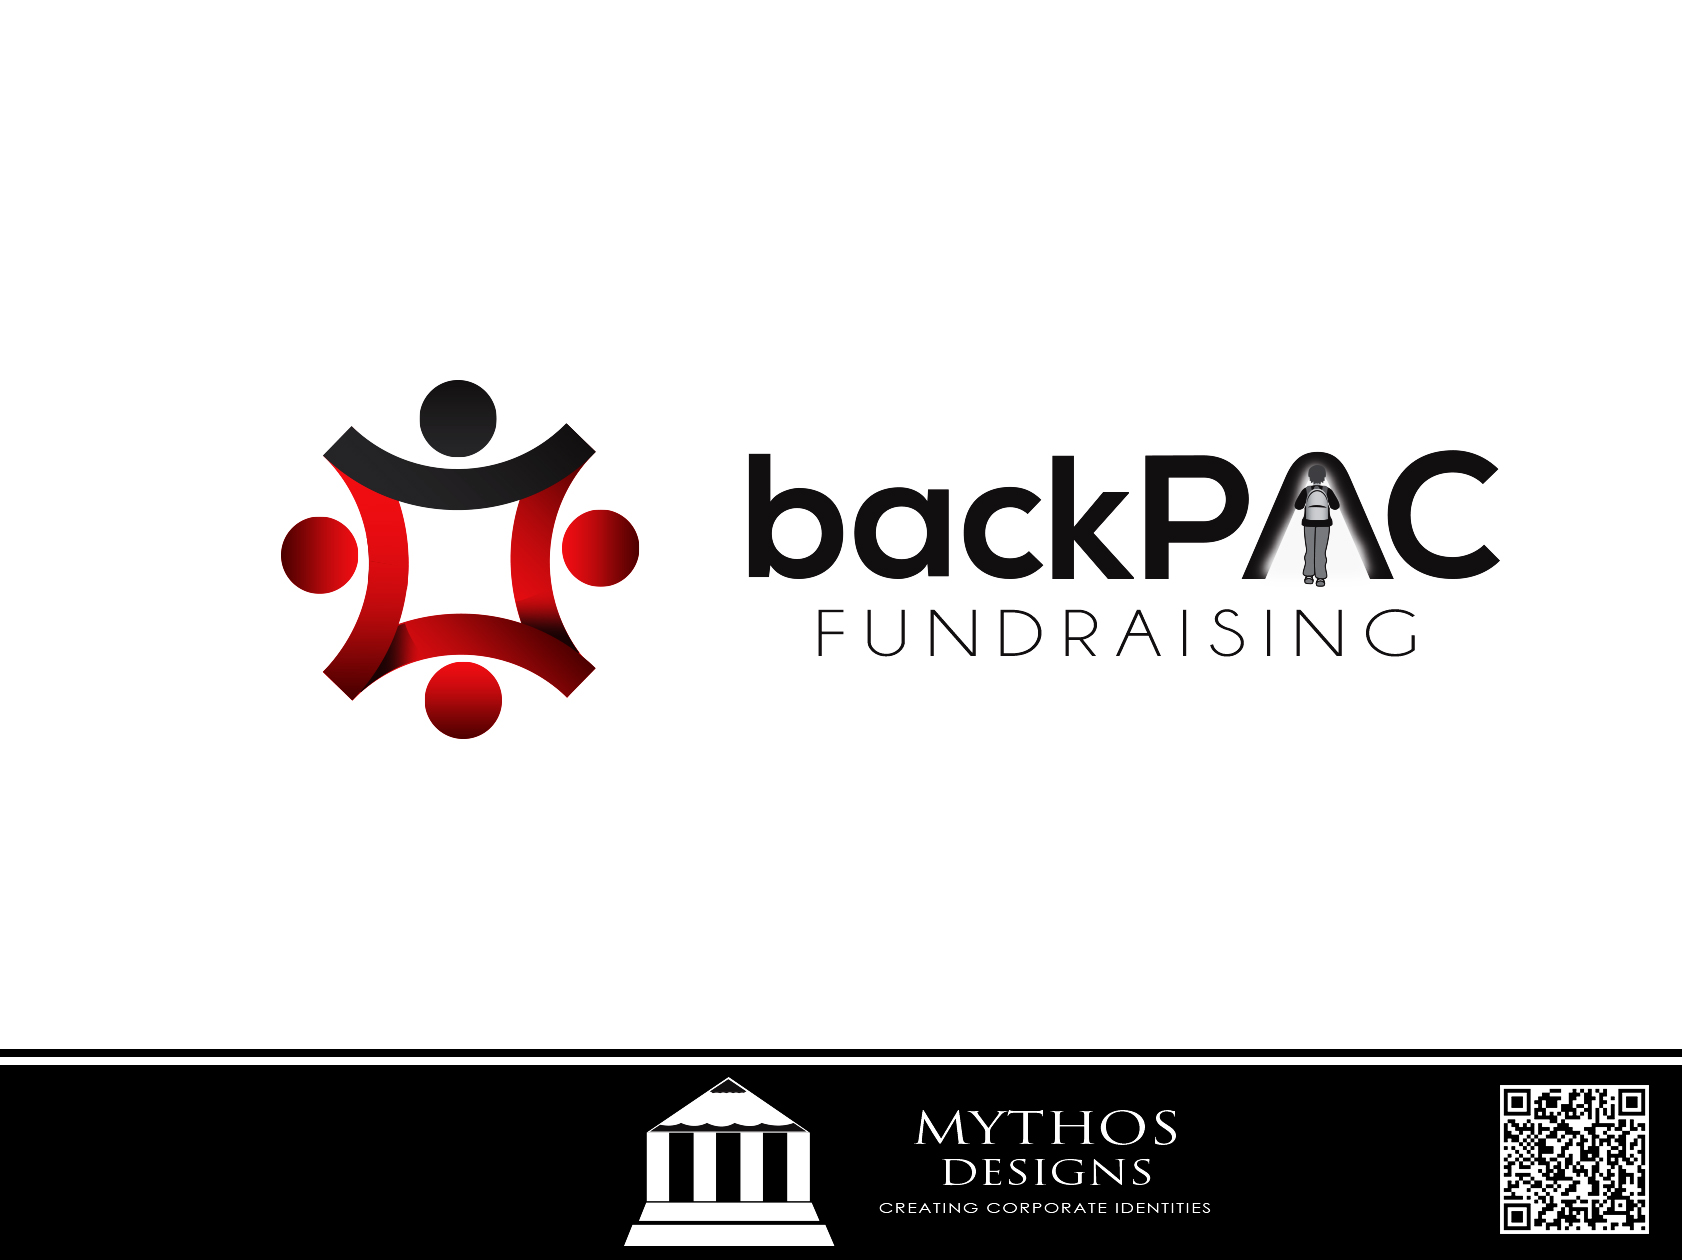 Logo Design by Mythos Designs - Entry No. 18 in the Logo Design Contest Imaginative Logo Design for BackPAC Fundraising.